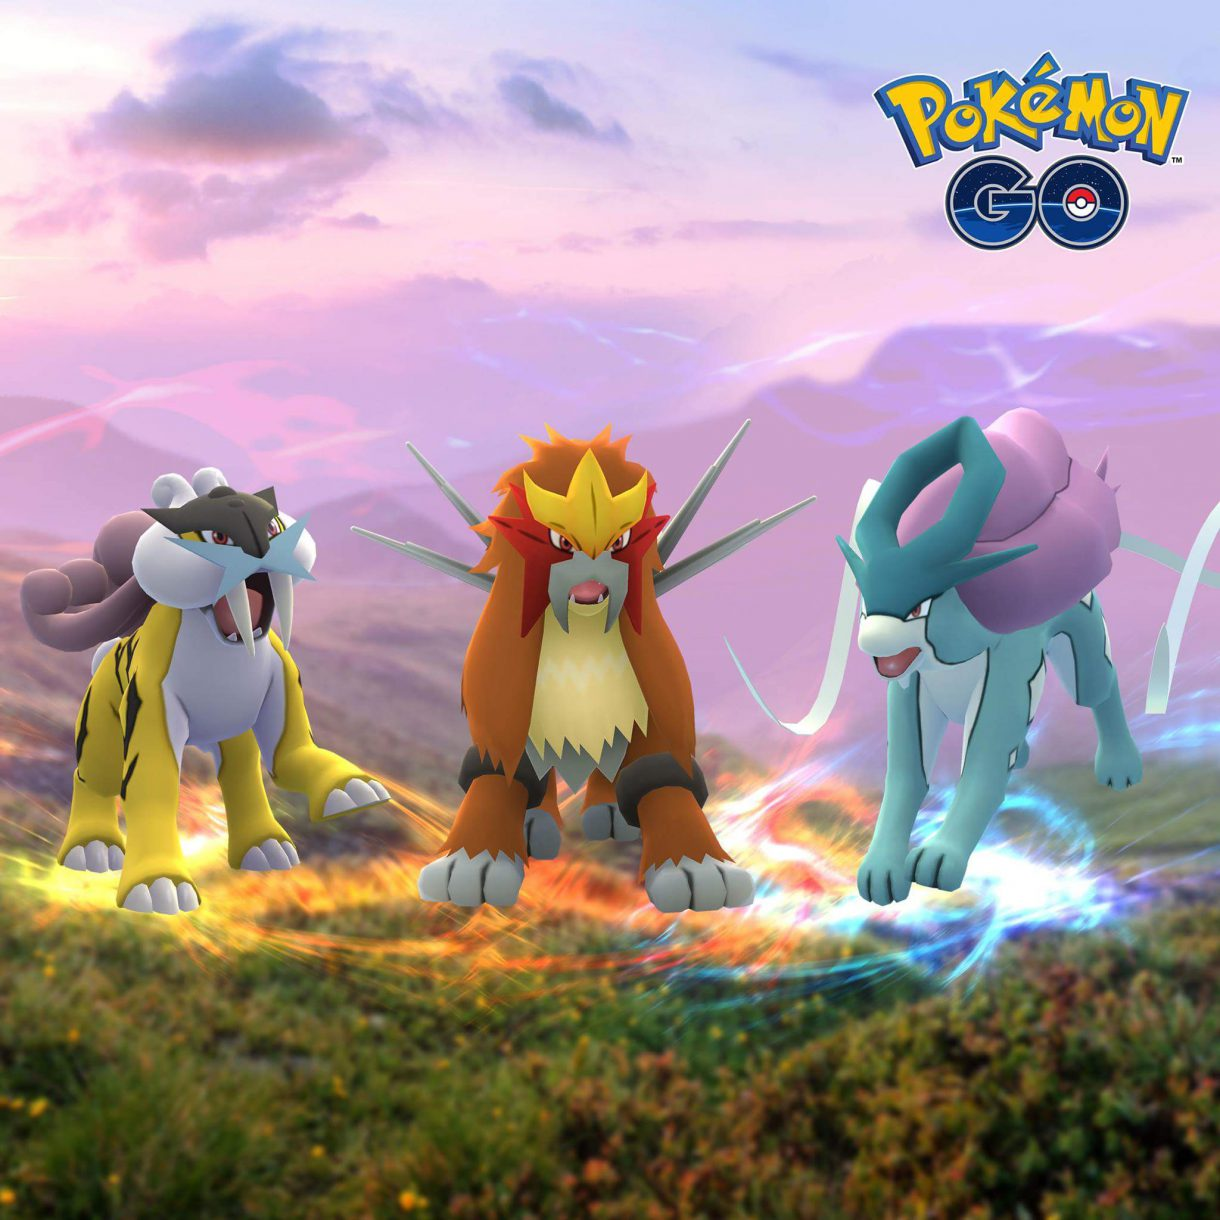 Pokemon Go Just Released Their First Ultra Bonuses, You Now Have A Chance To Catch The Legendary Dog Pokemon In Raids Along With New Shiny Pokemon